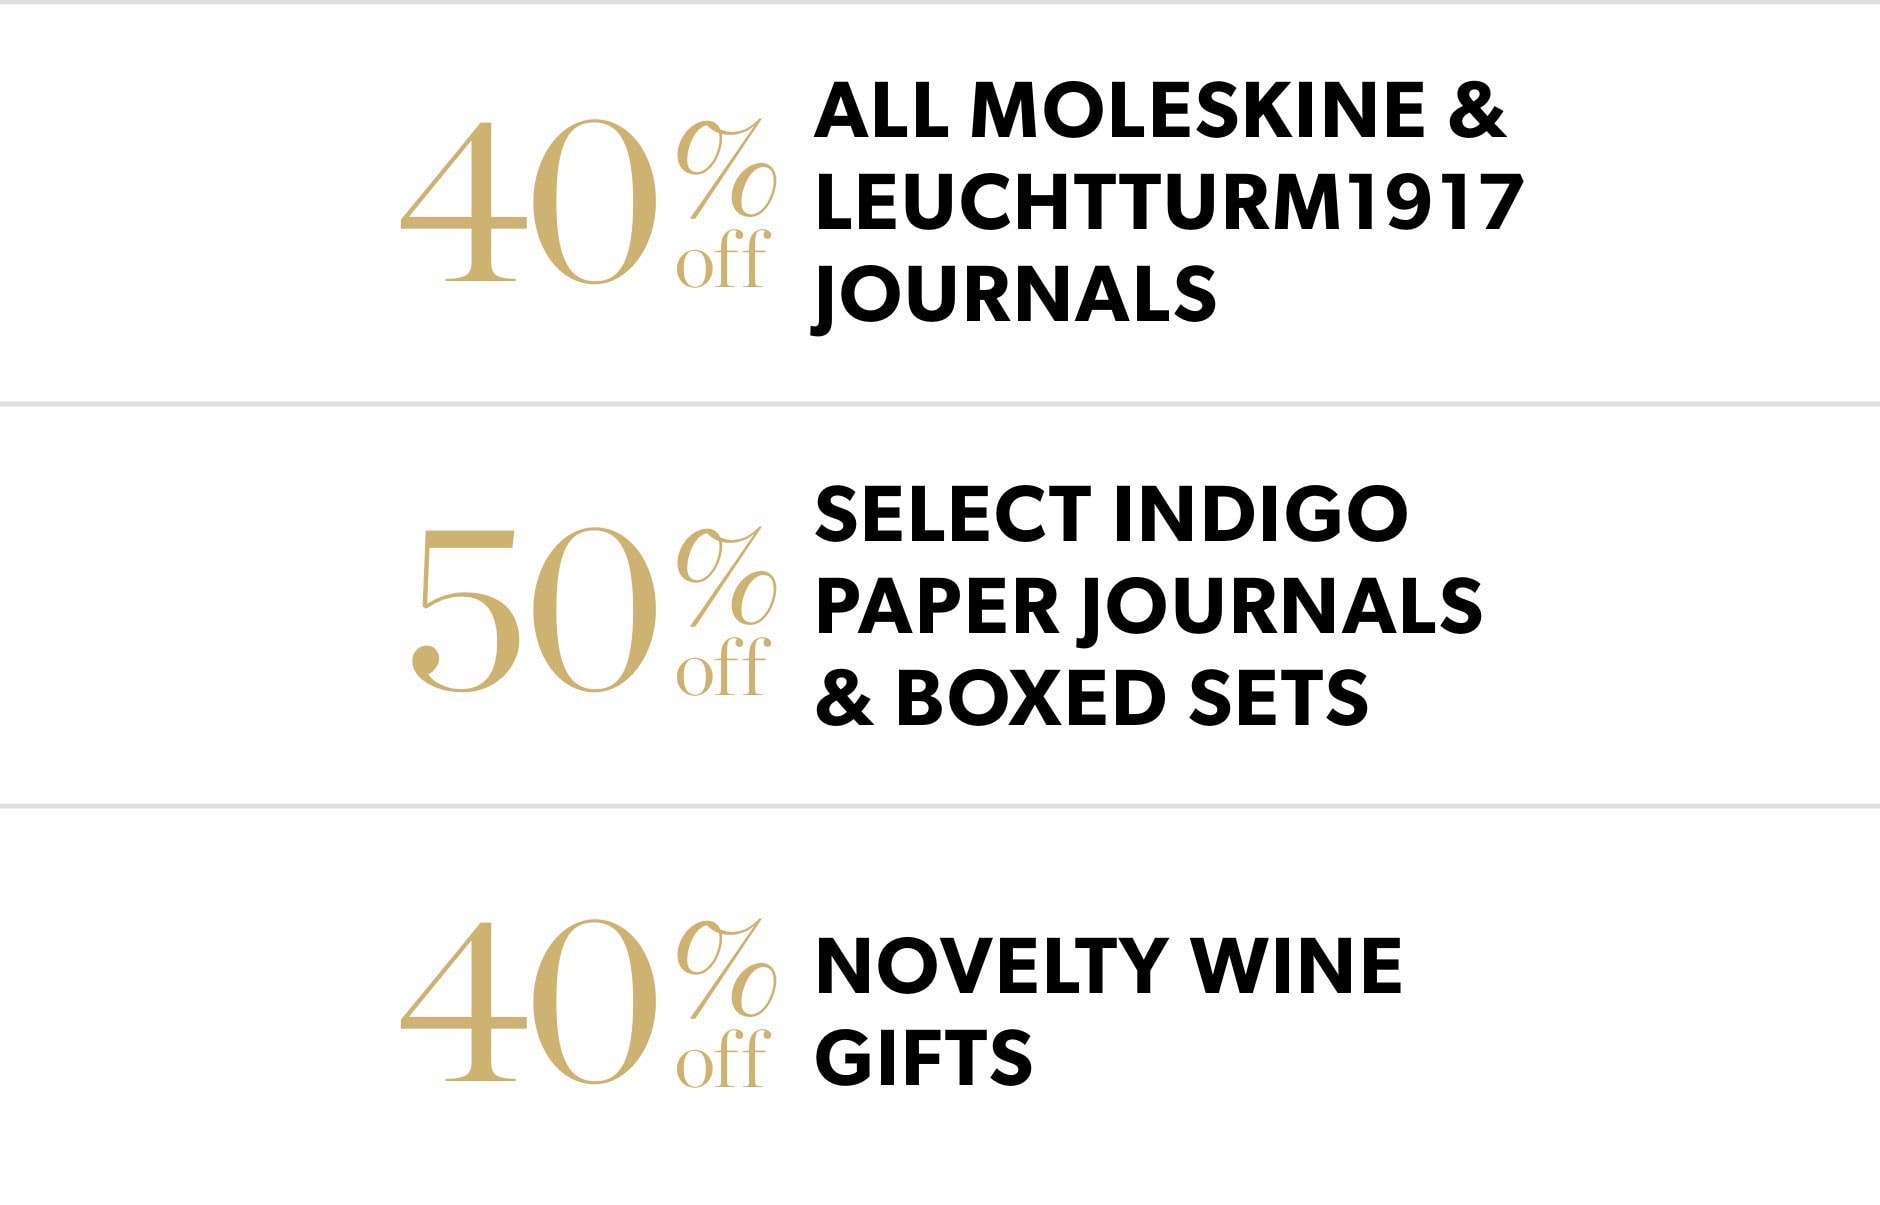 Black Friday In-Store Only: 40% off all Moleskine and Leuchtturm1917 journals & 40% novelty wine gifts